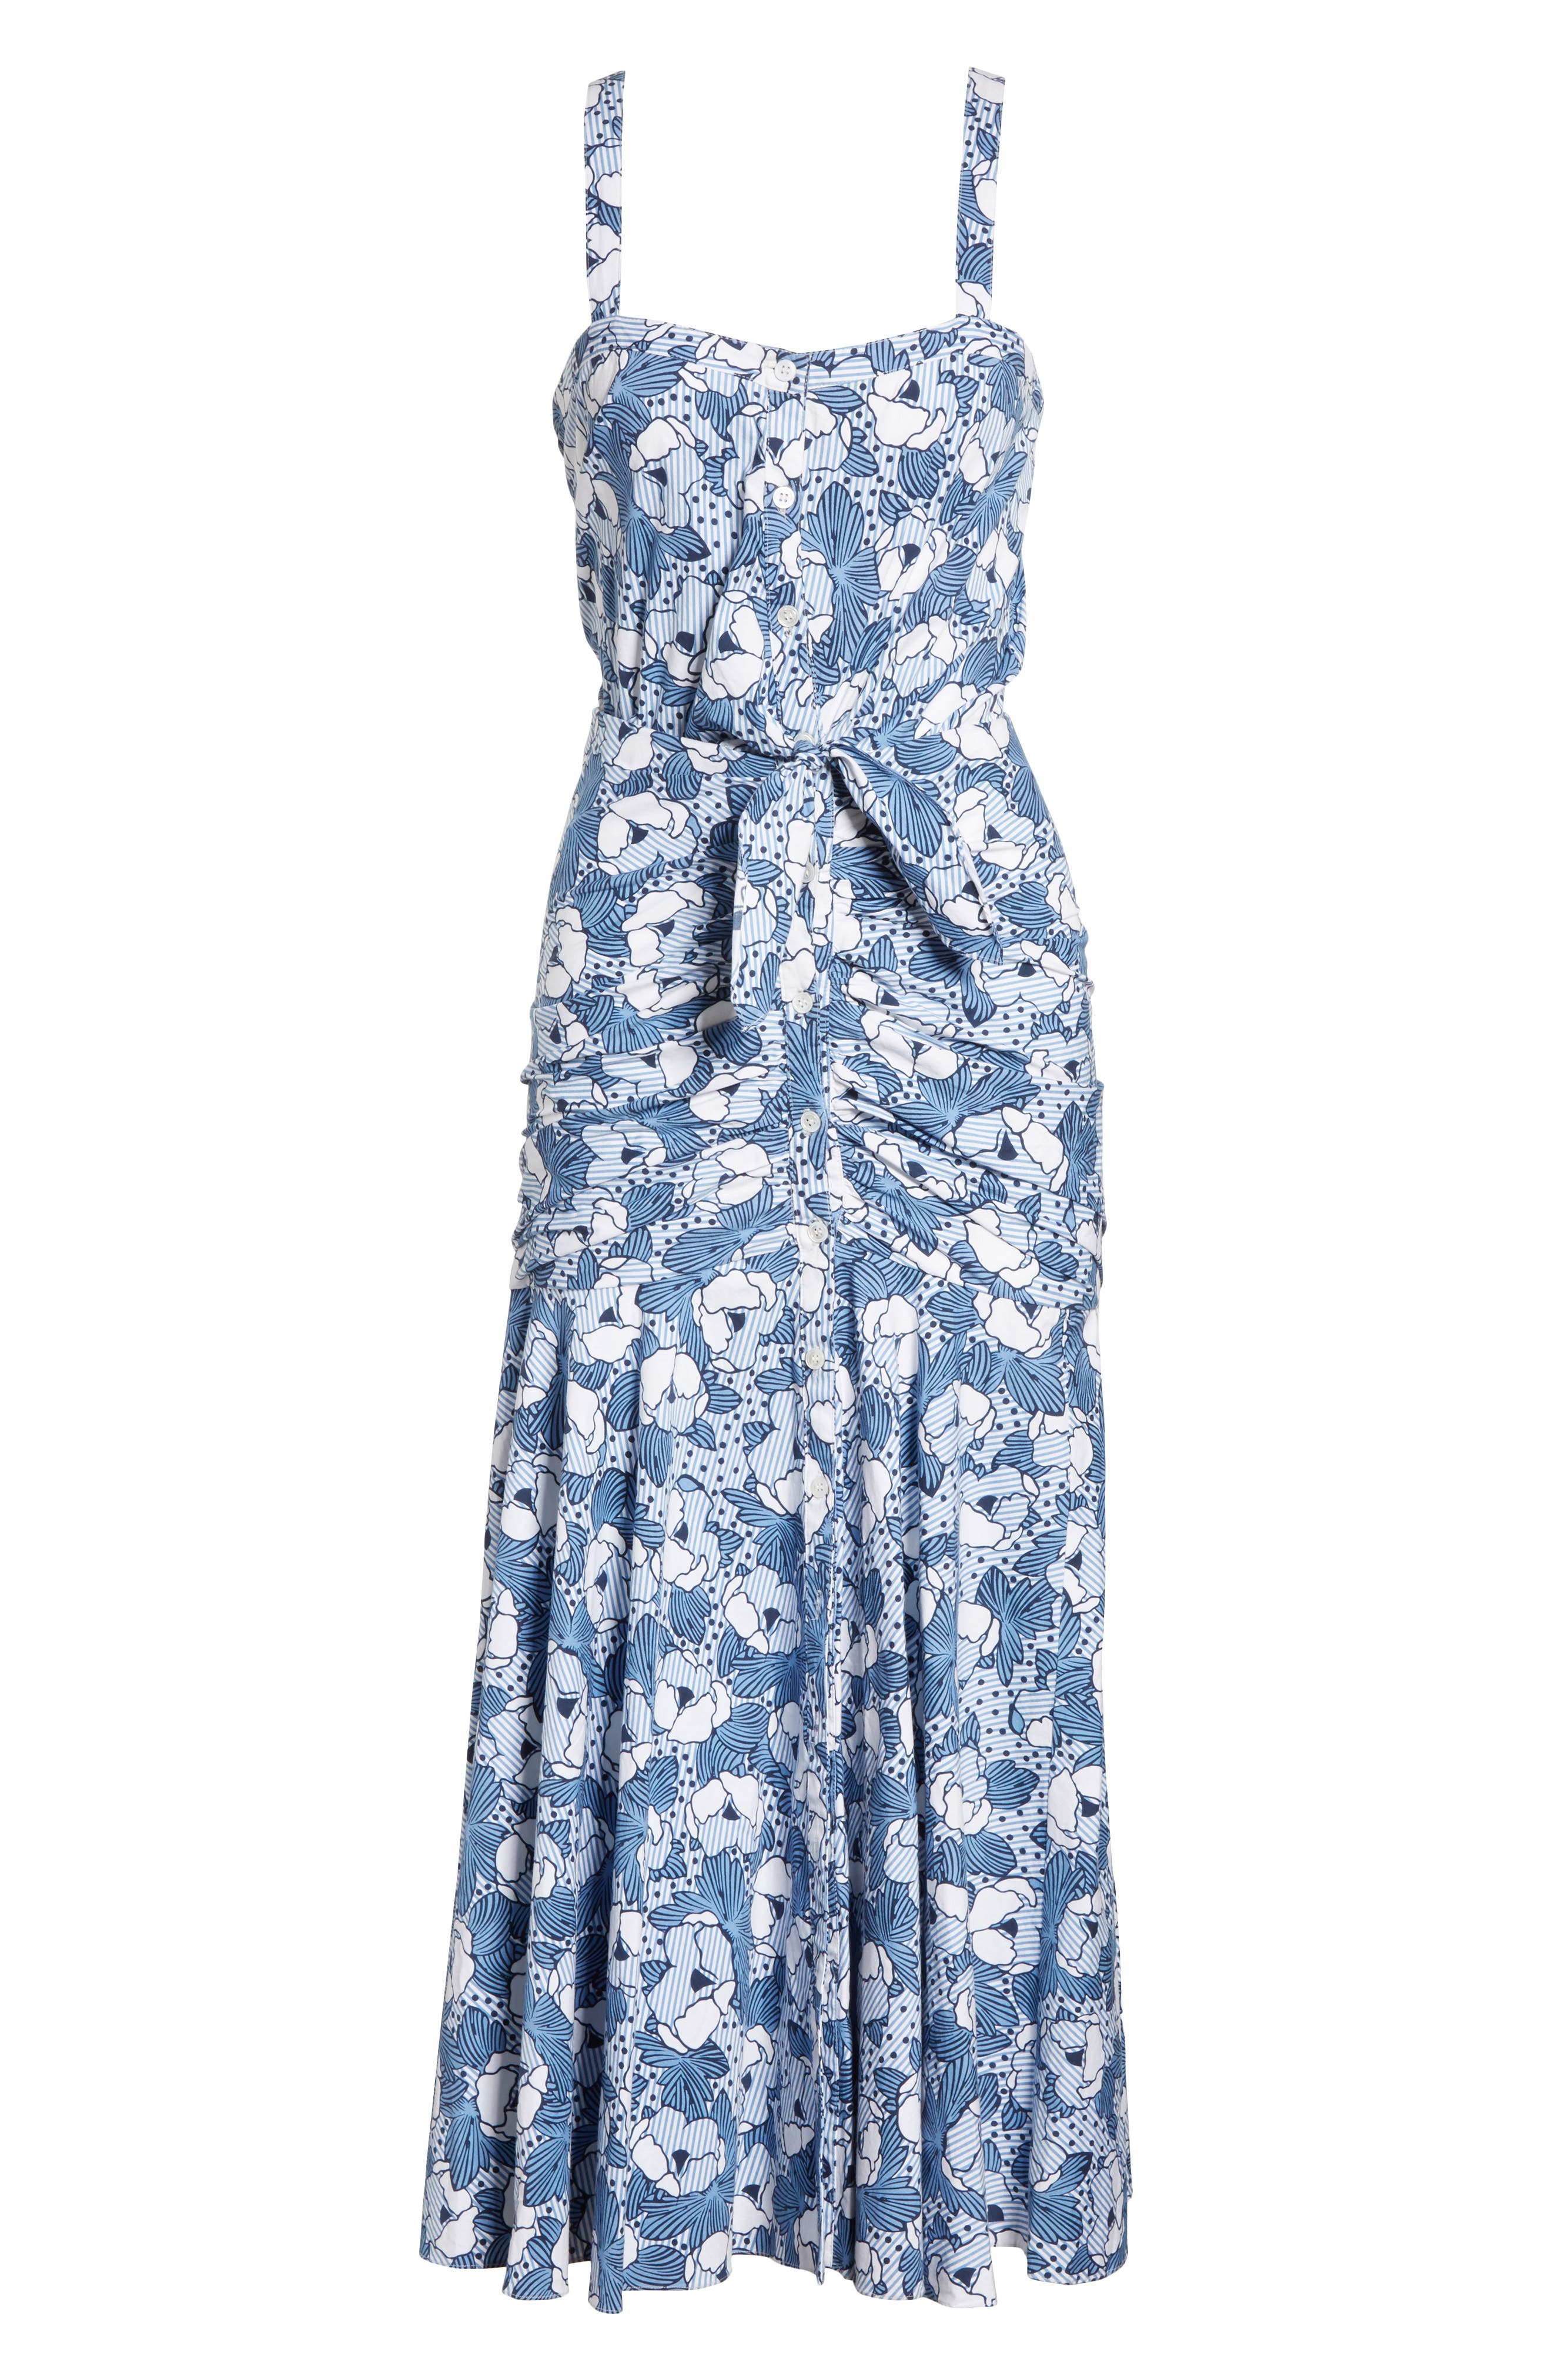 Marena Ruched Waist Floral Midi Dress,                             Alternate thumbnail 6, color,                             Blue/ White